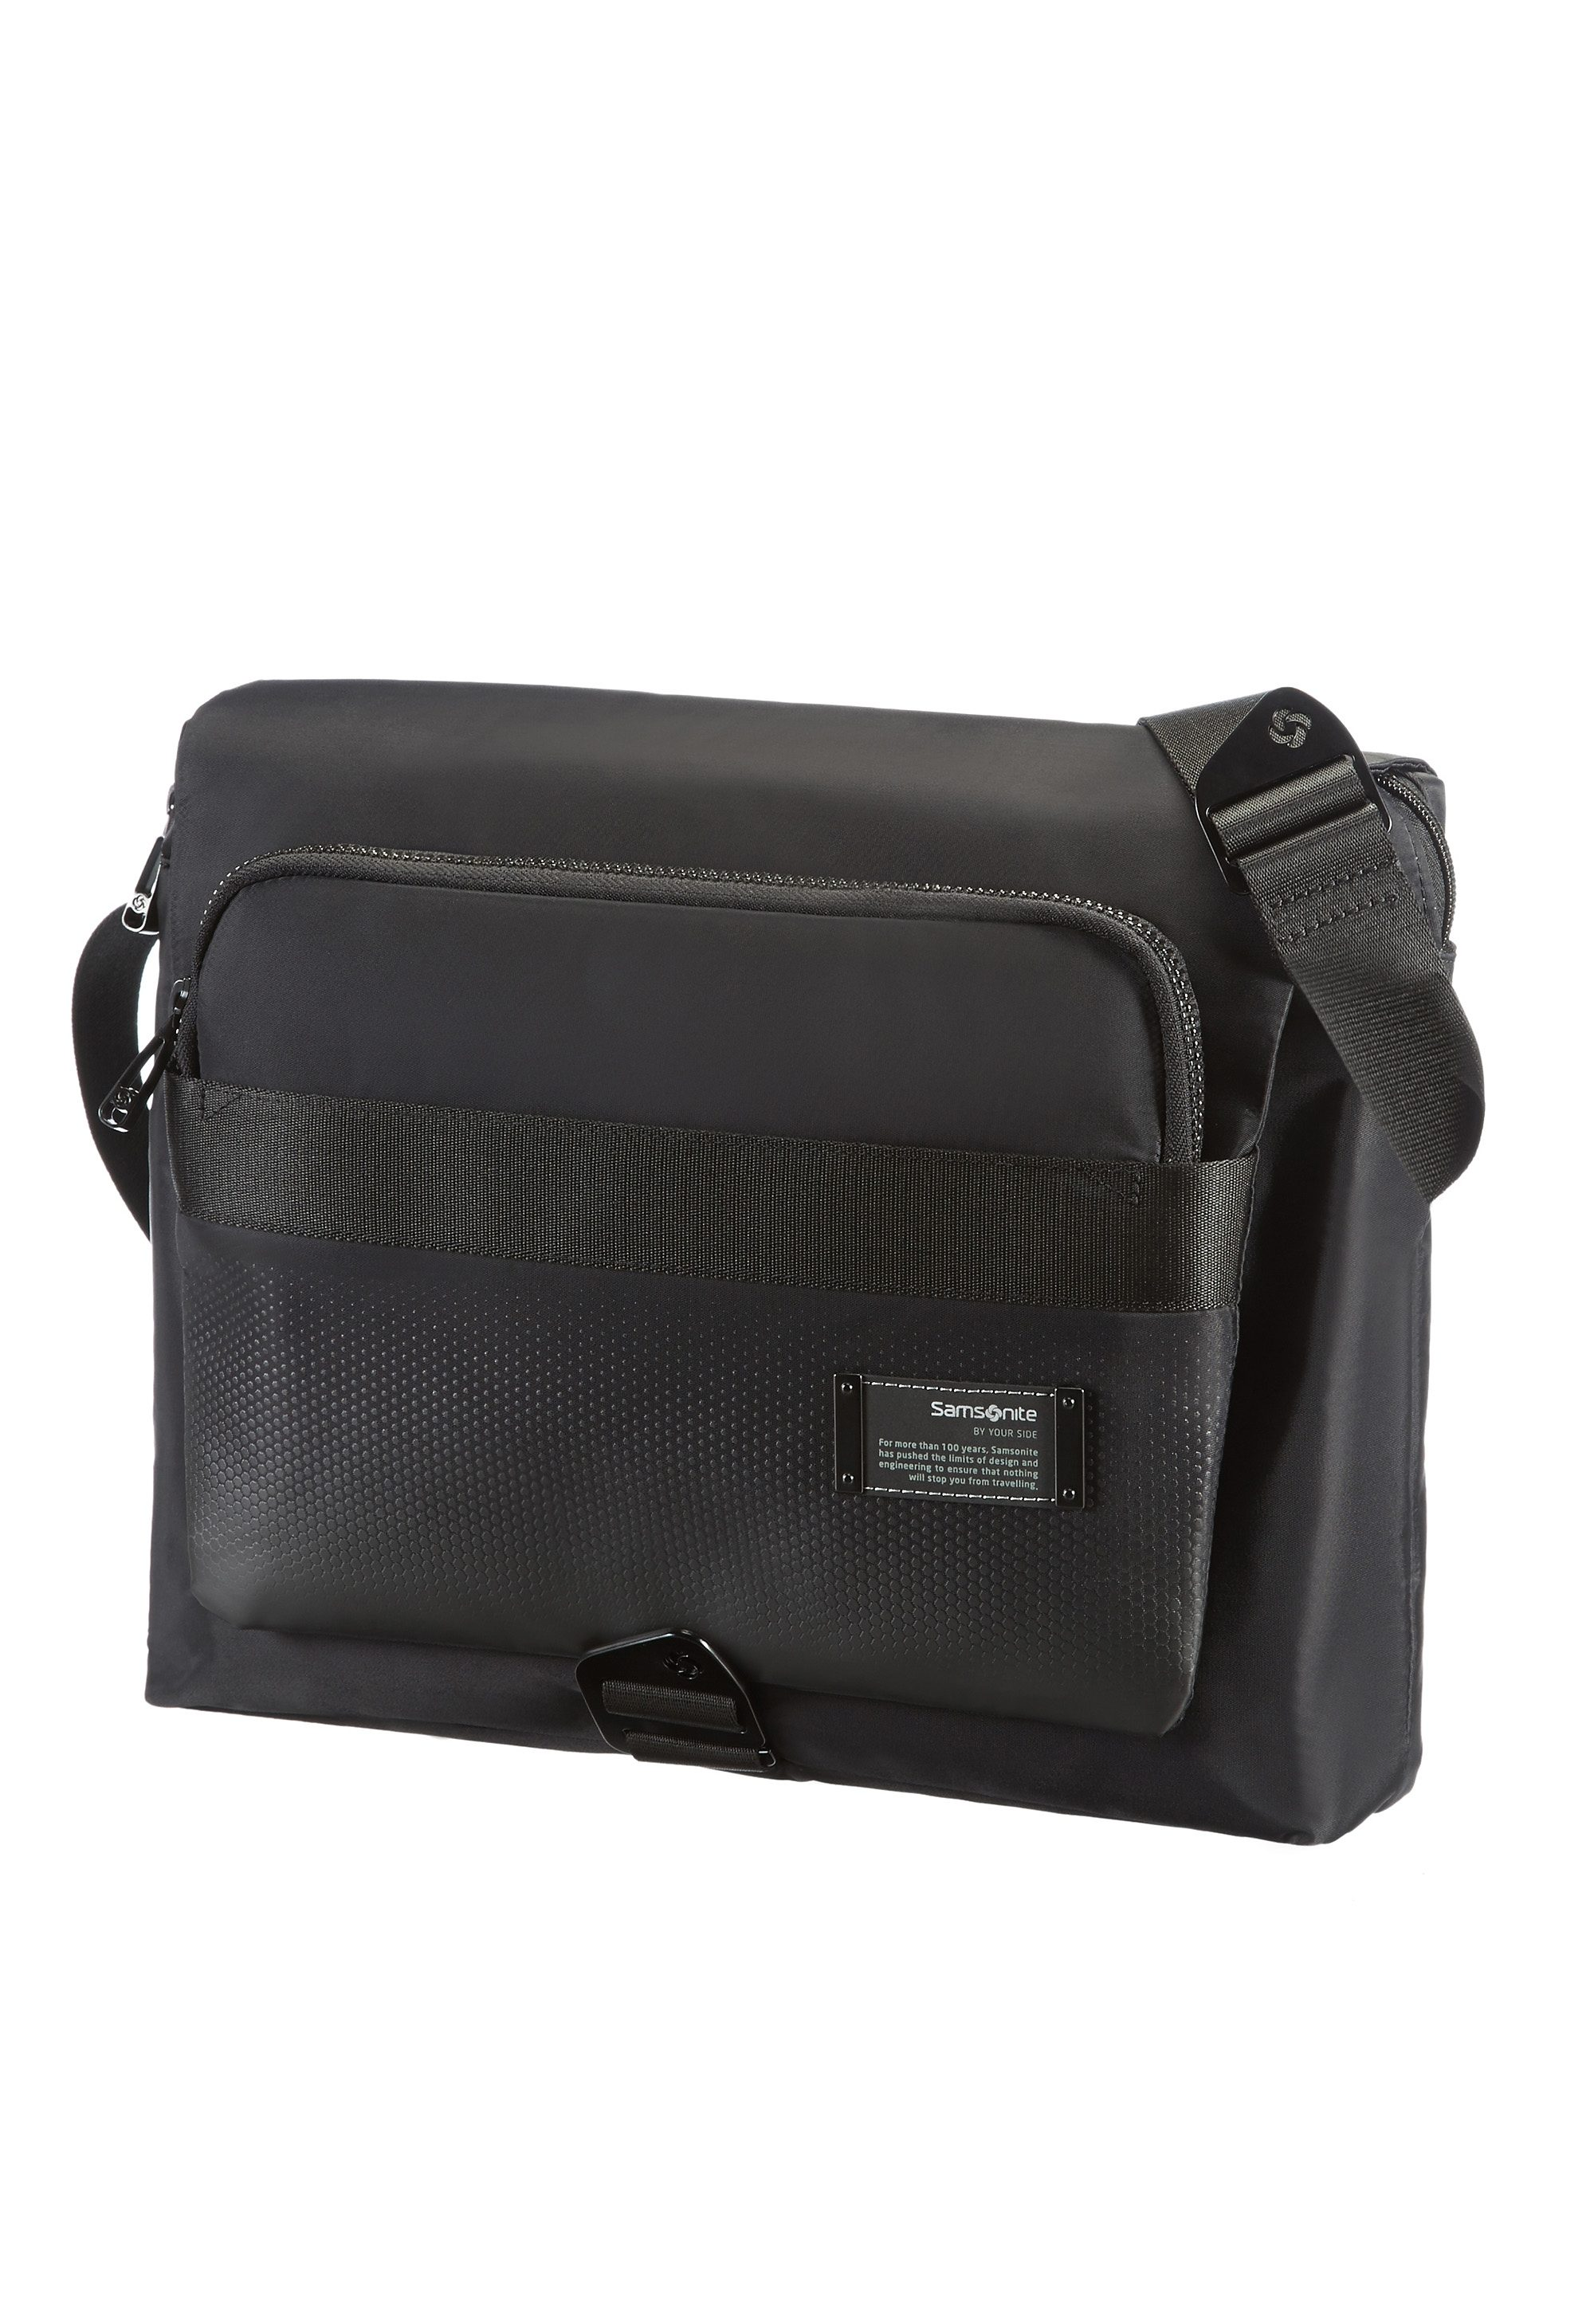 Samsonite Messengerbag mit Tablet- und 11,6-Zoll Laptopfach, »Cityvibe«